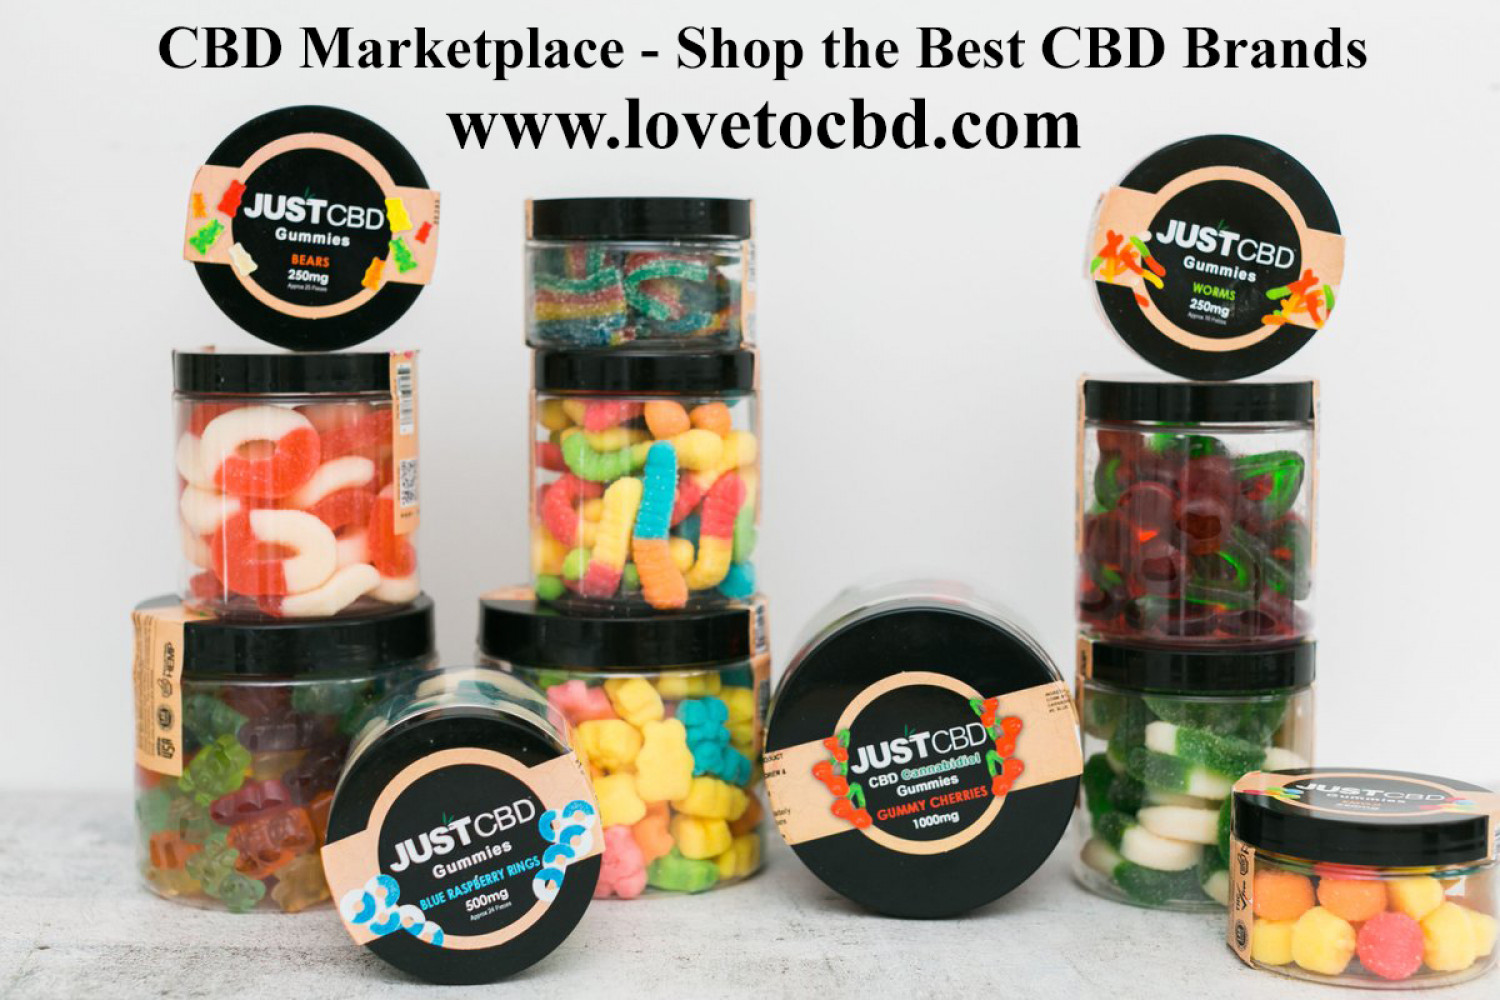 Love to CBD - CBD Marketplace - CBD Marketplace Infographic